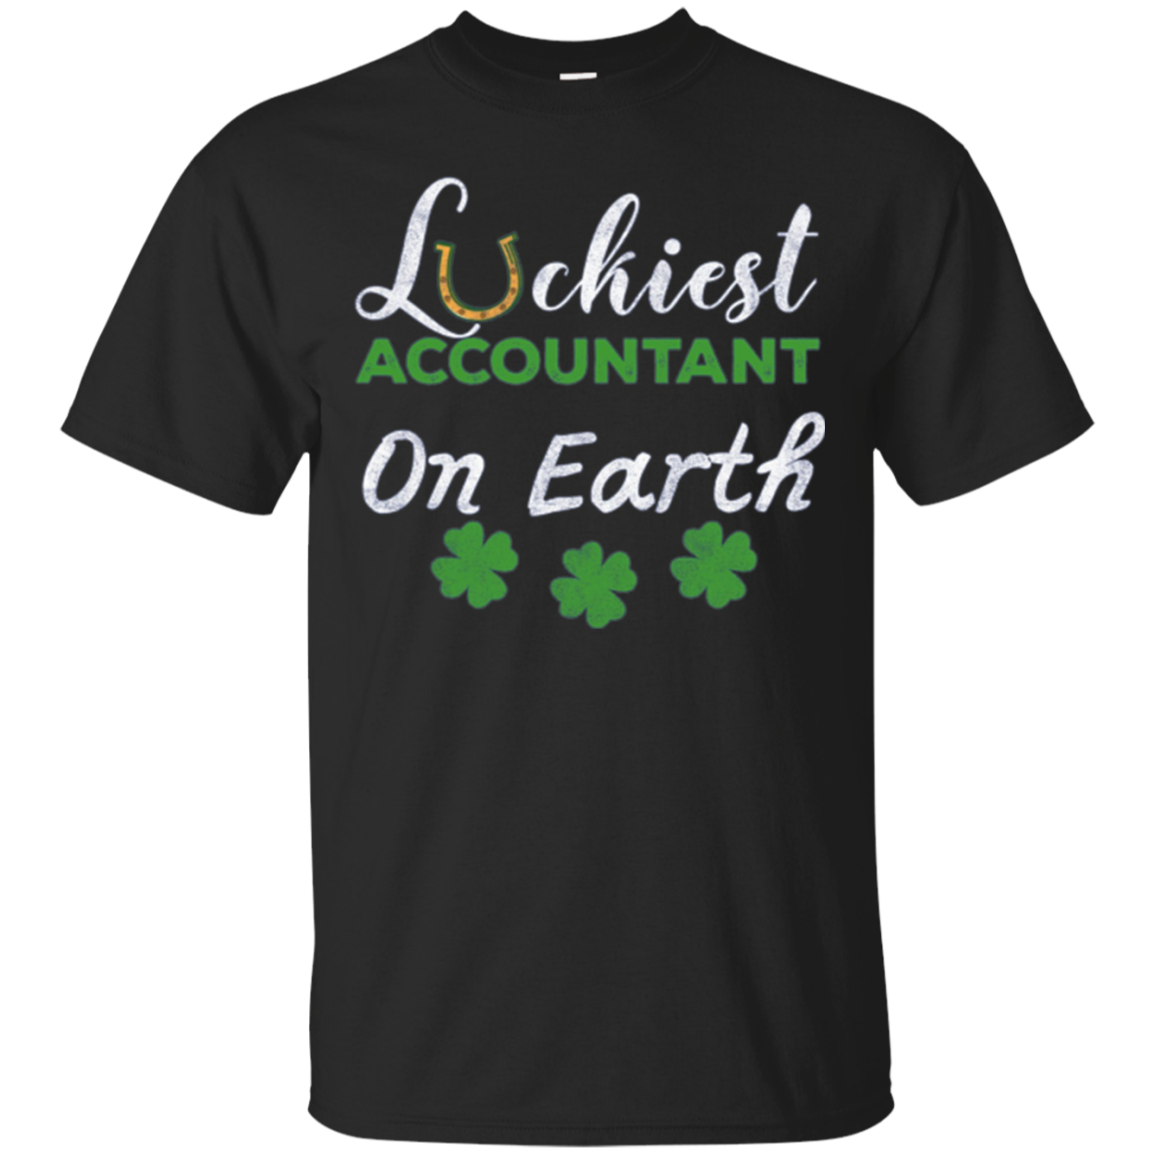 Luckiest Accountant On Earth T-Shirt St Patrick's Day Gift